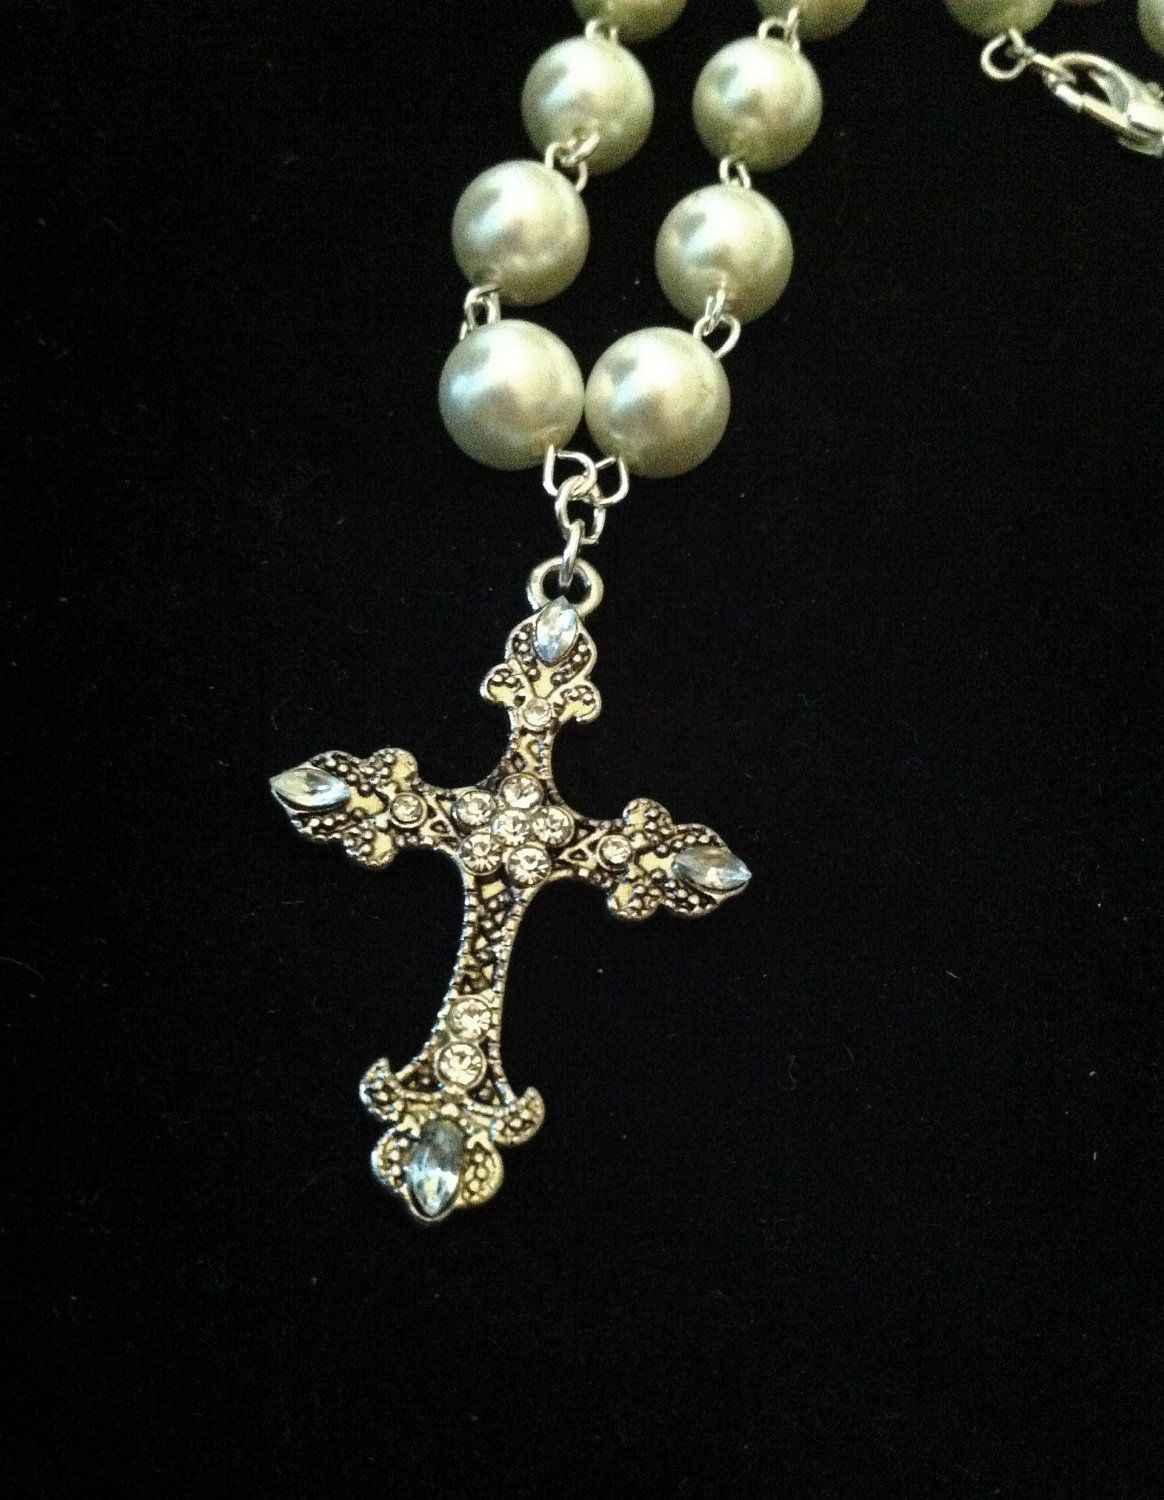 Wedding cross necklace pearl necklace with rhinestone cross pendant wedding cross necklace pearl necklace with rhinestone cross pendant first communion necklace 1043 3000 via etsy aloadofball Images